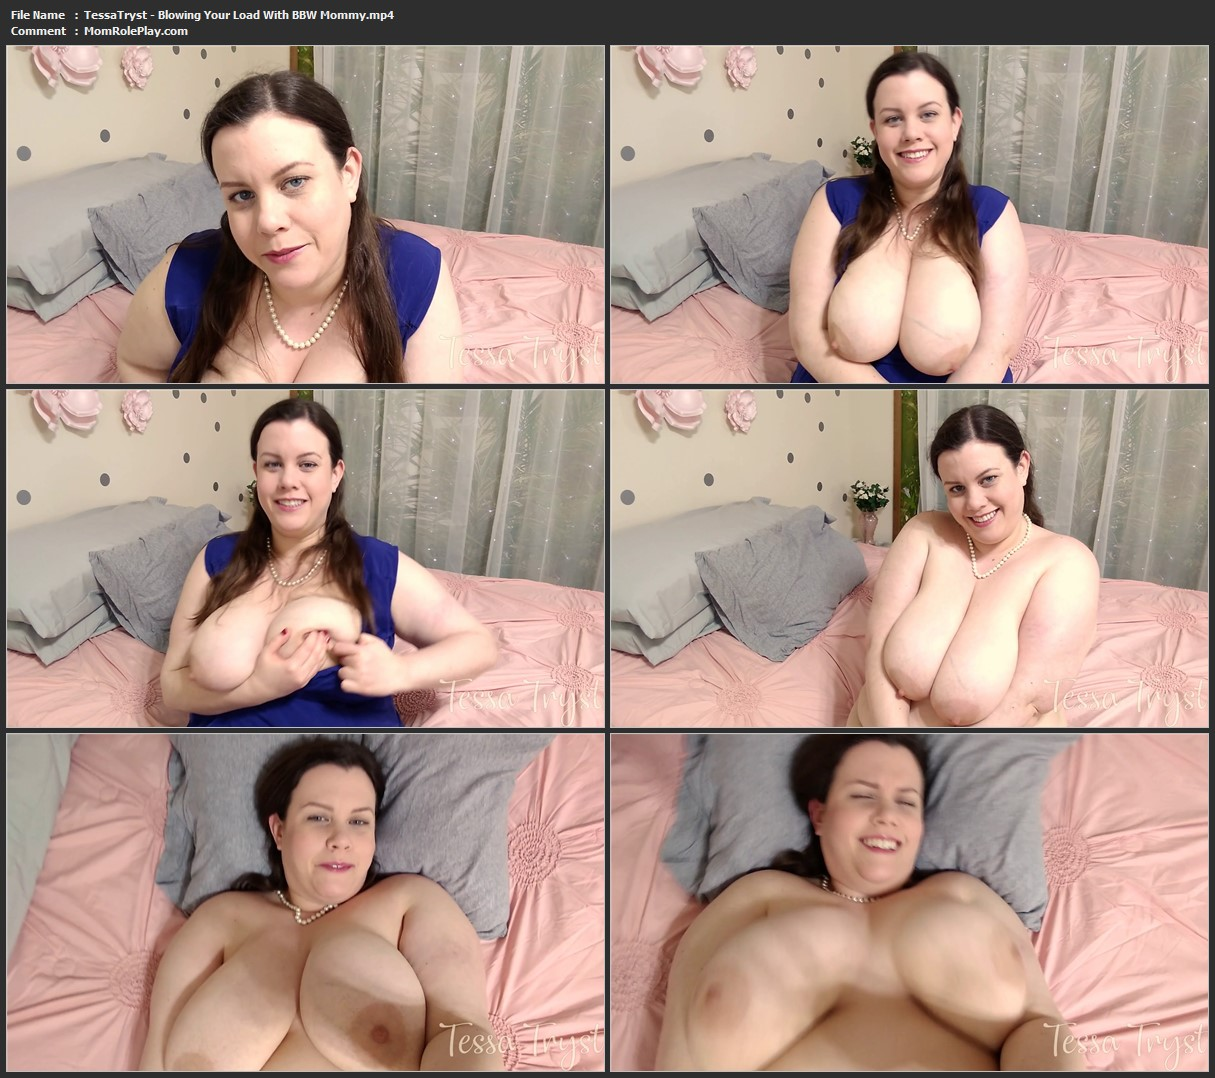 Tessa Tryst - Blowing Your Load With BBW Mommy